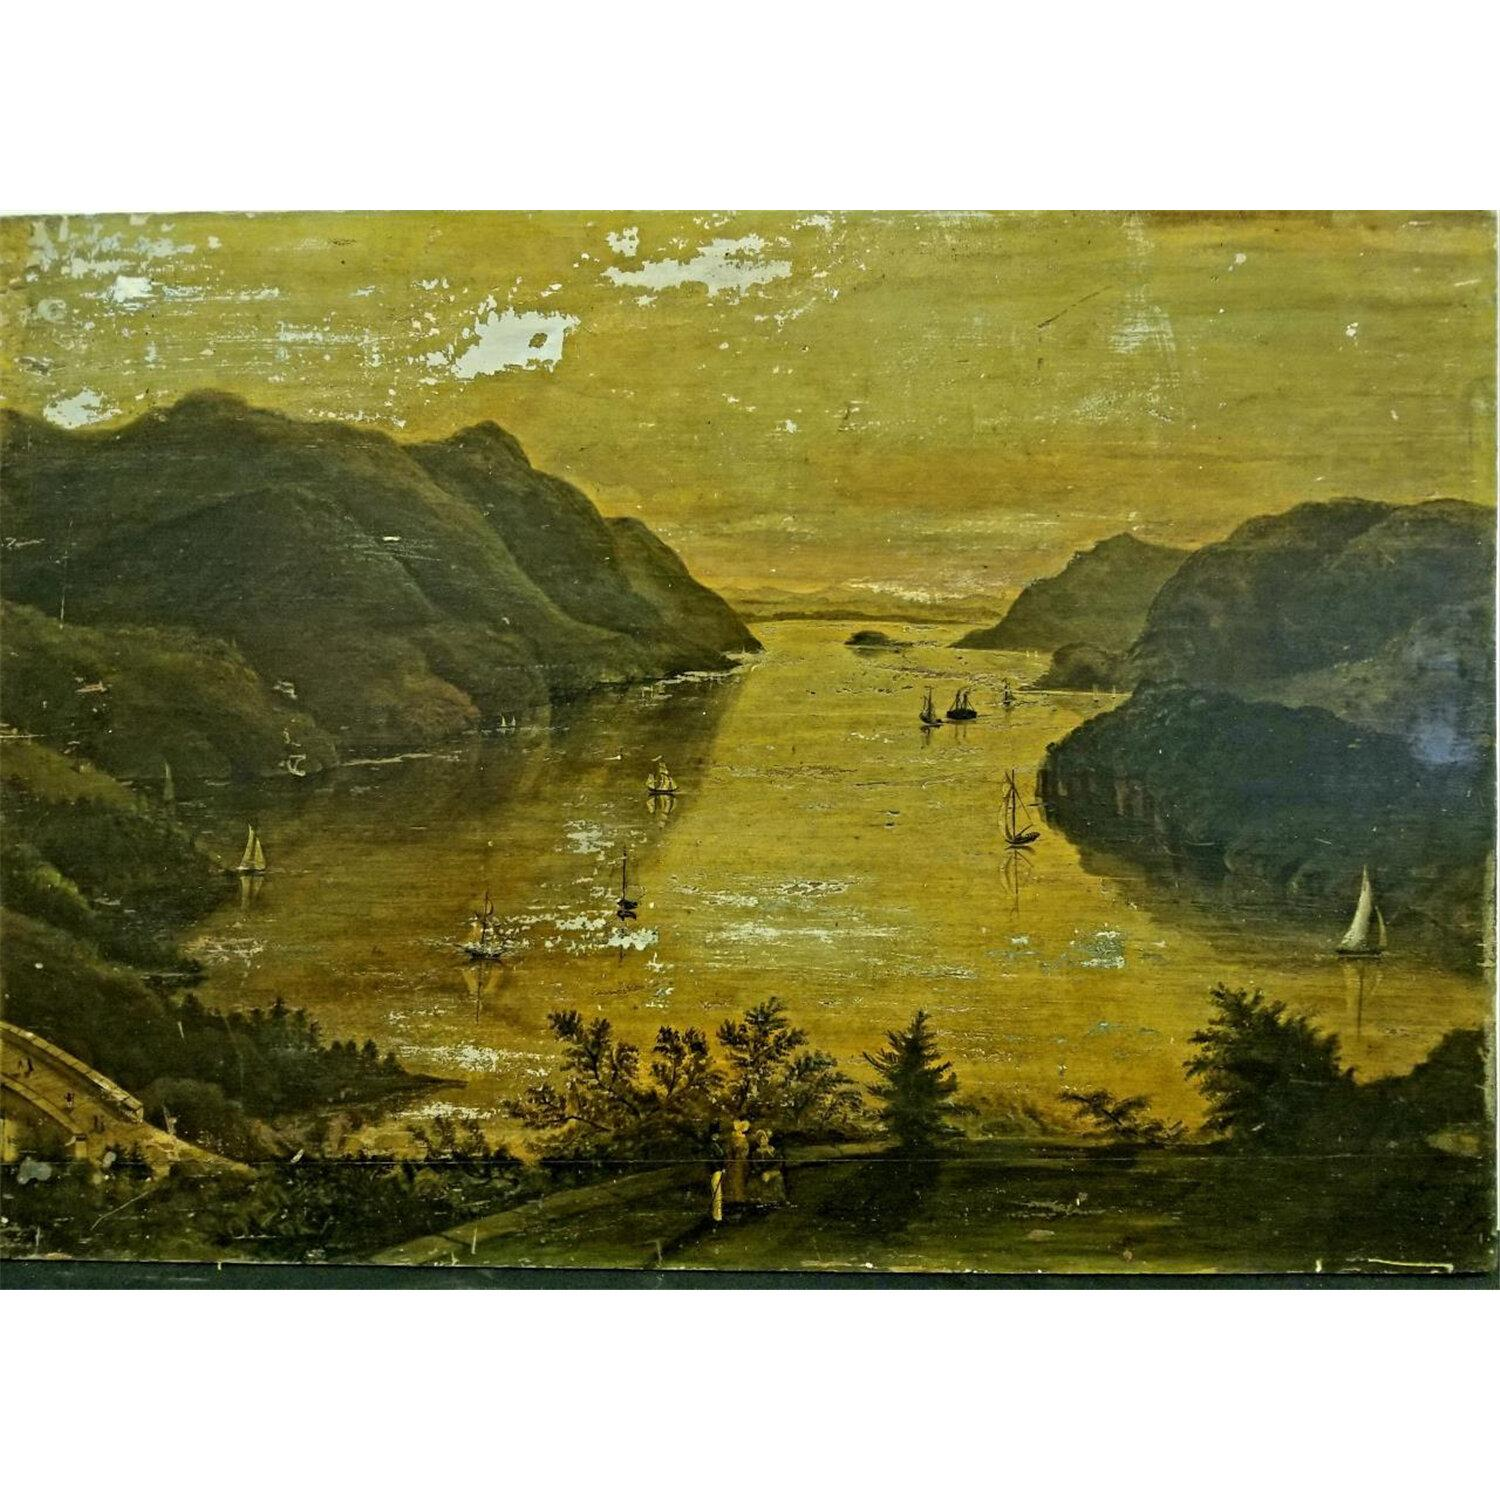 Antique Painting Oil on Board. Probably 18thC